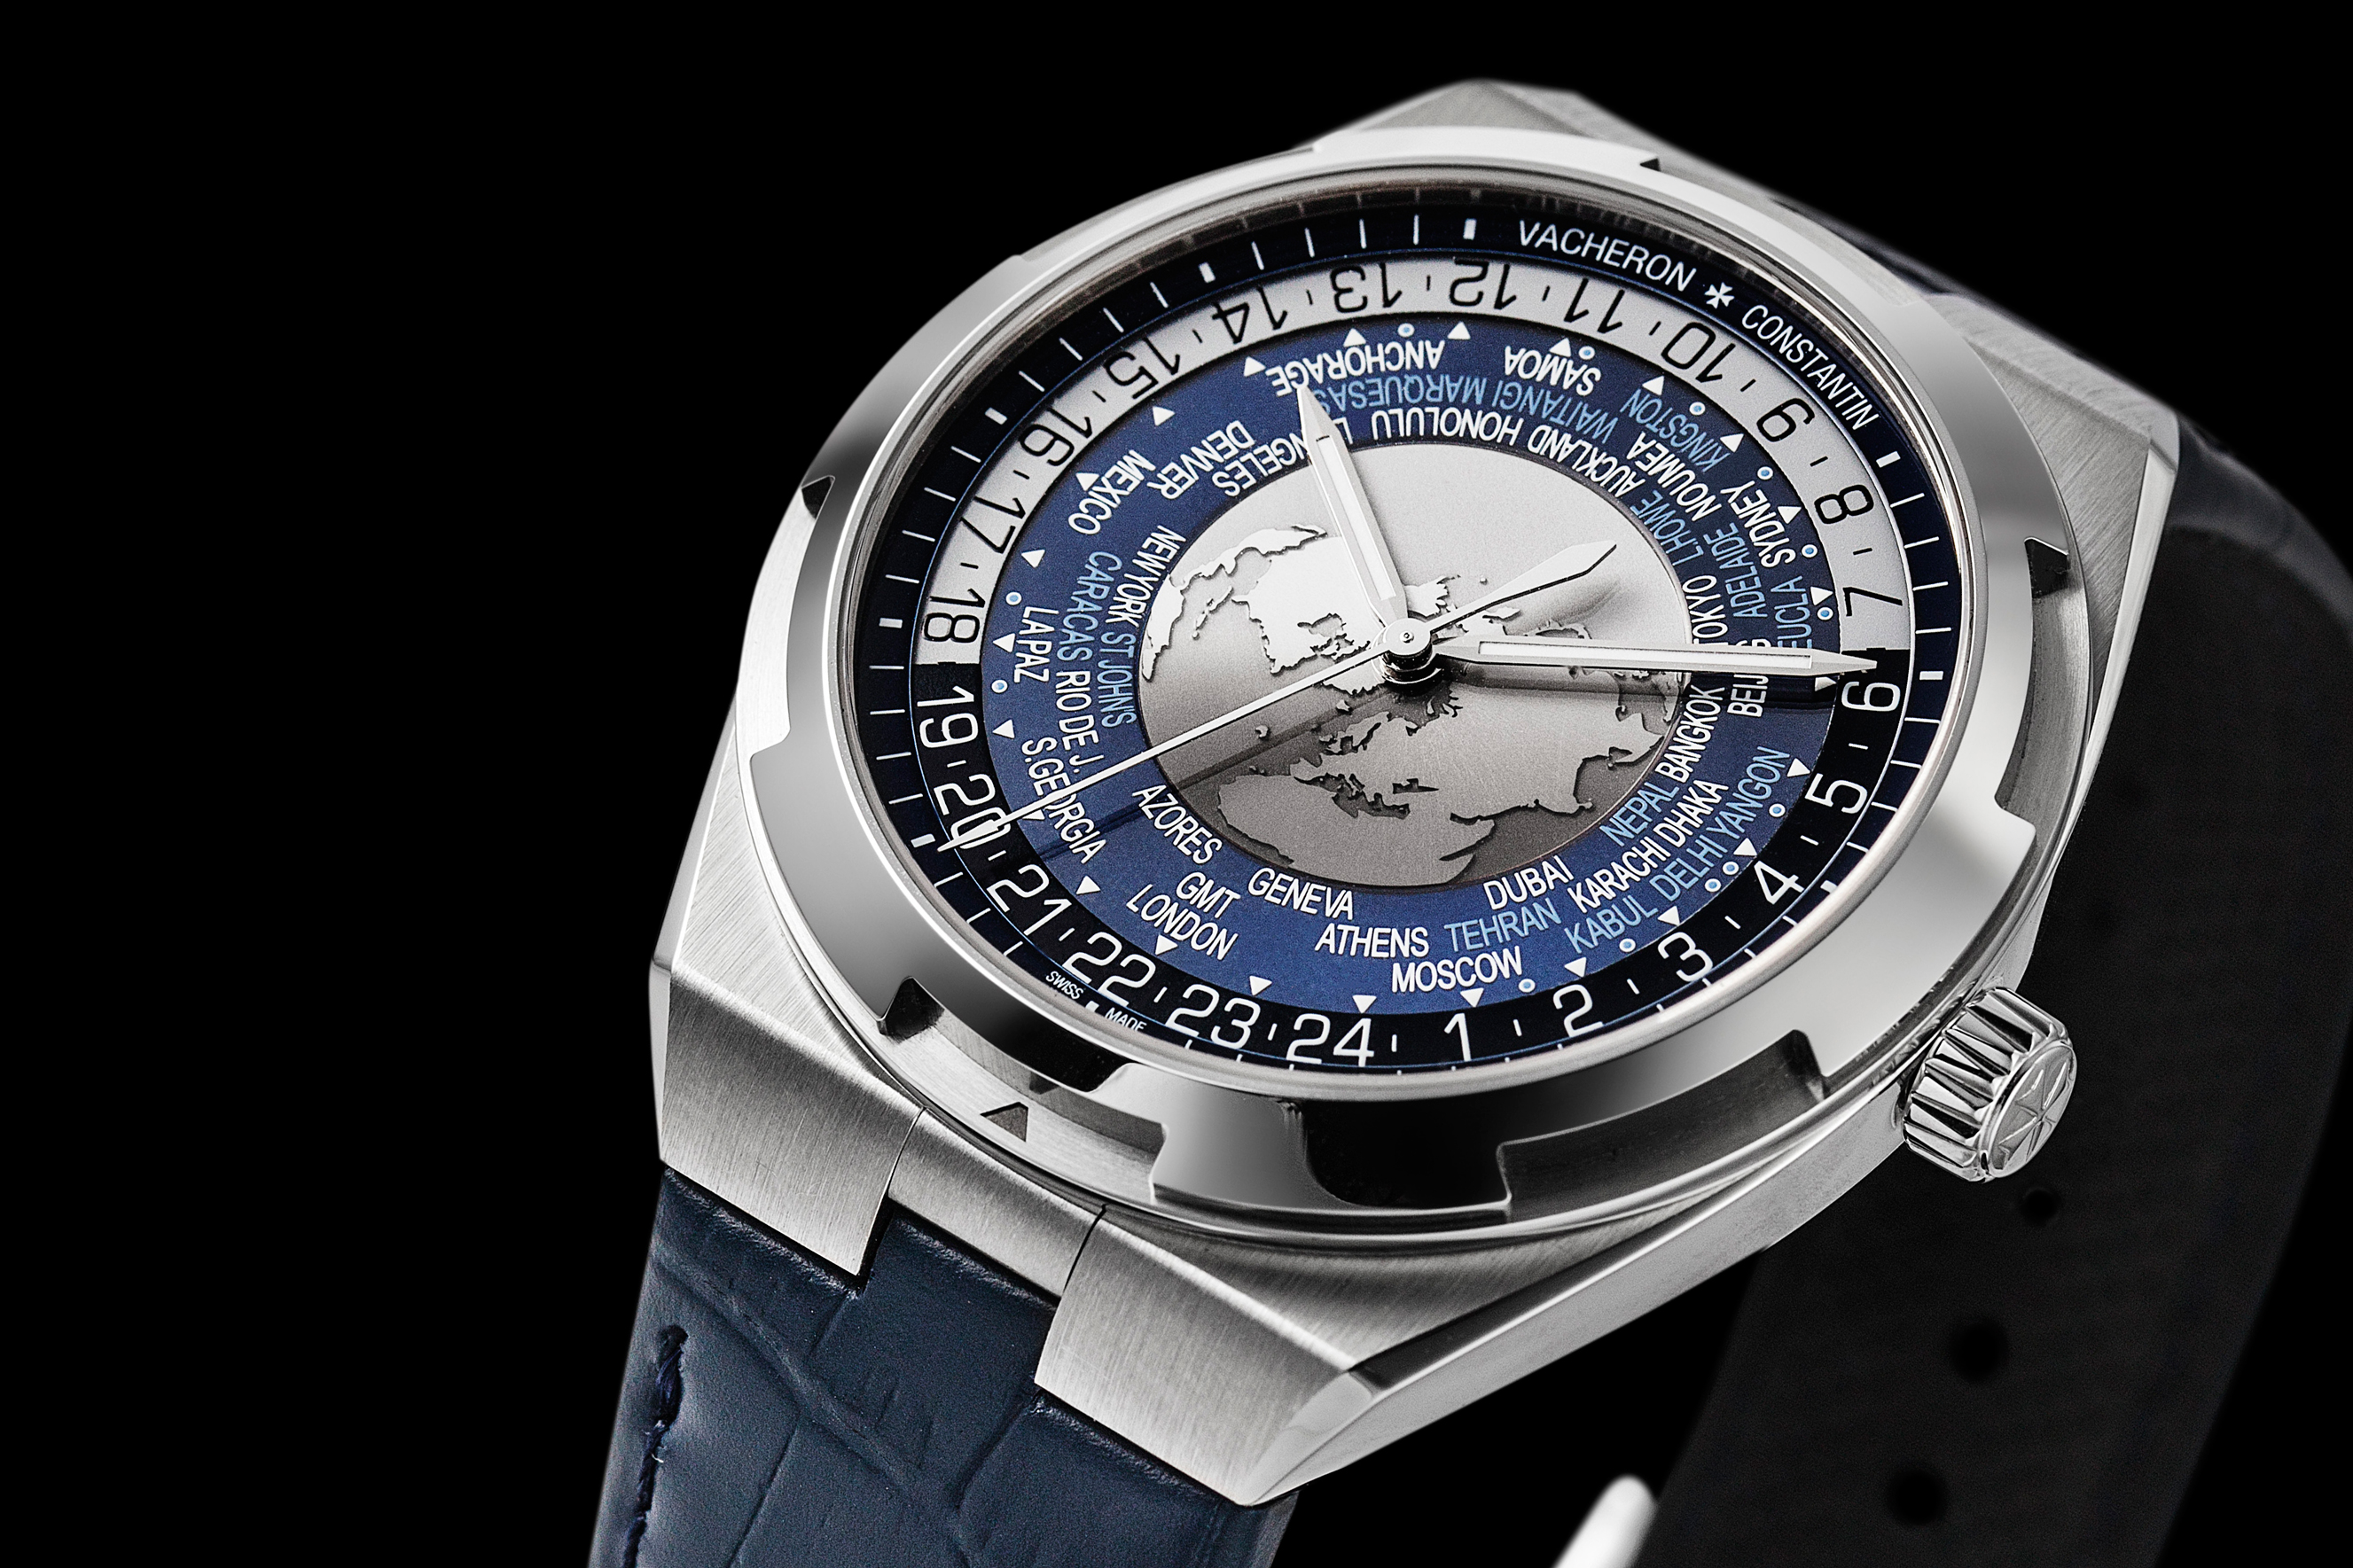 Announcing The Overseas World Time